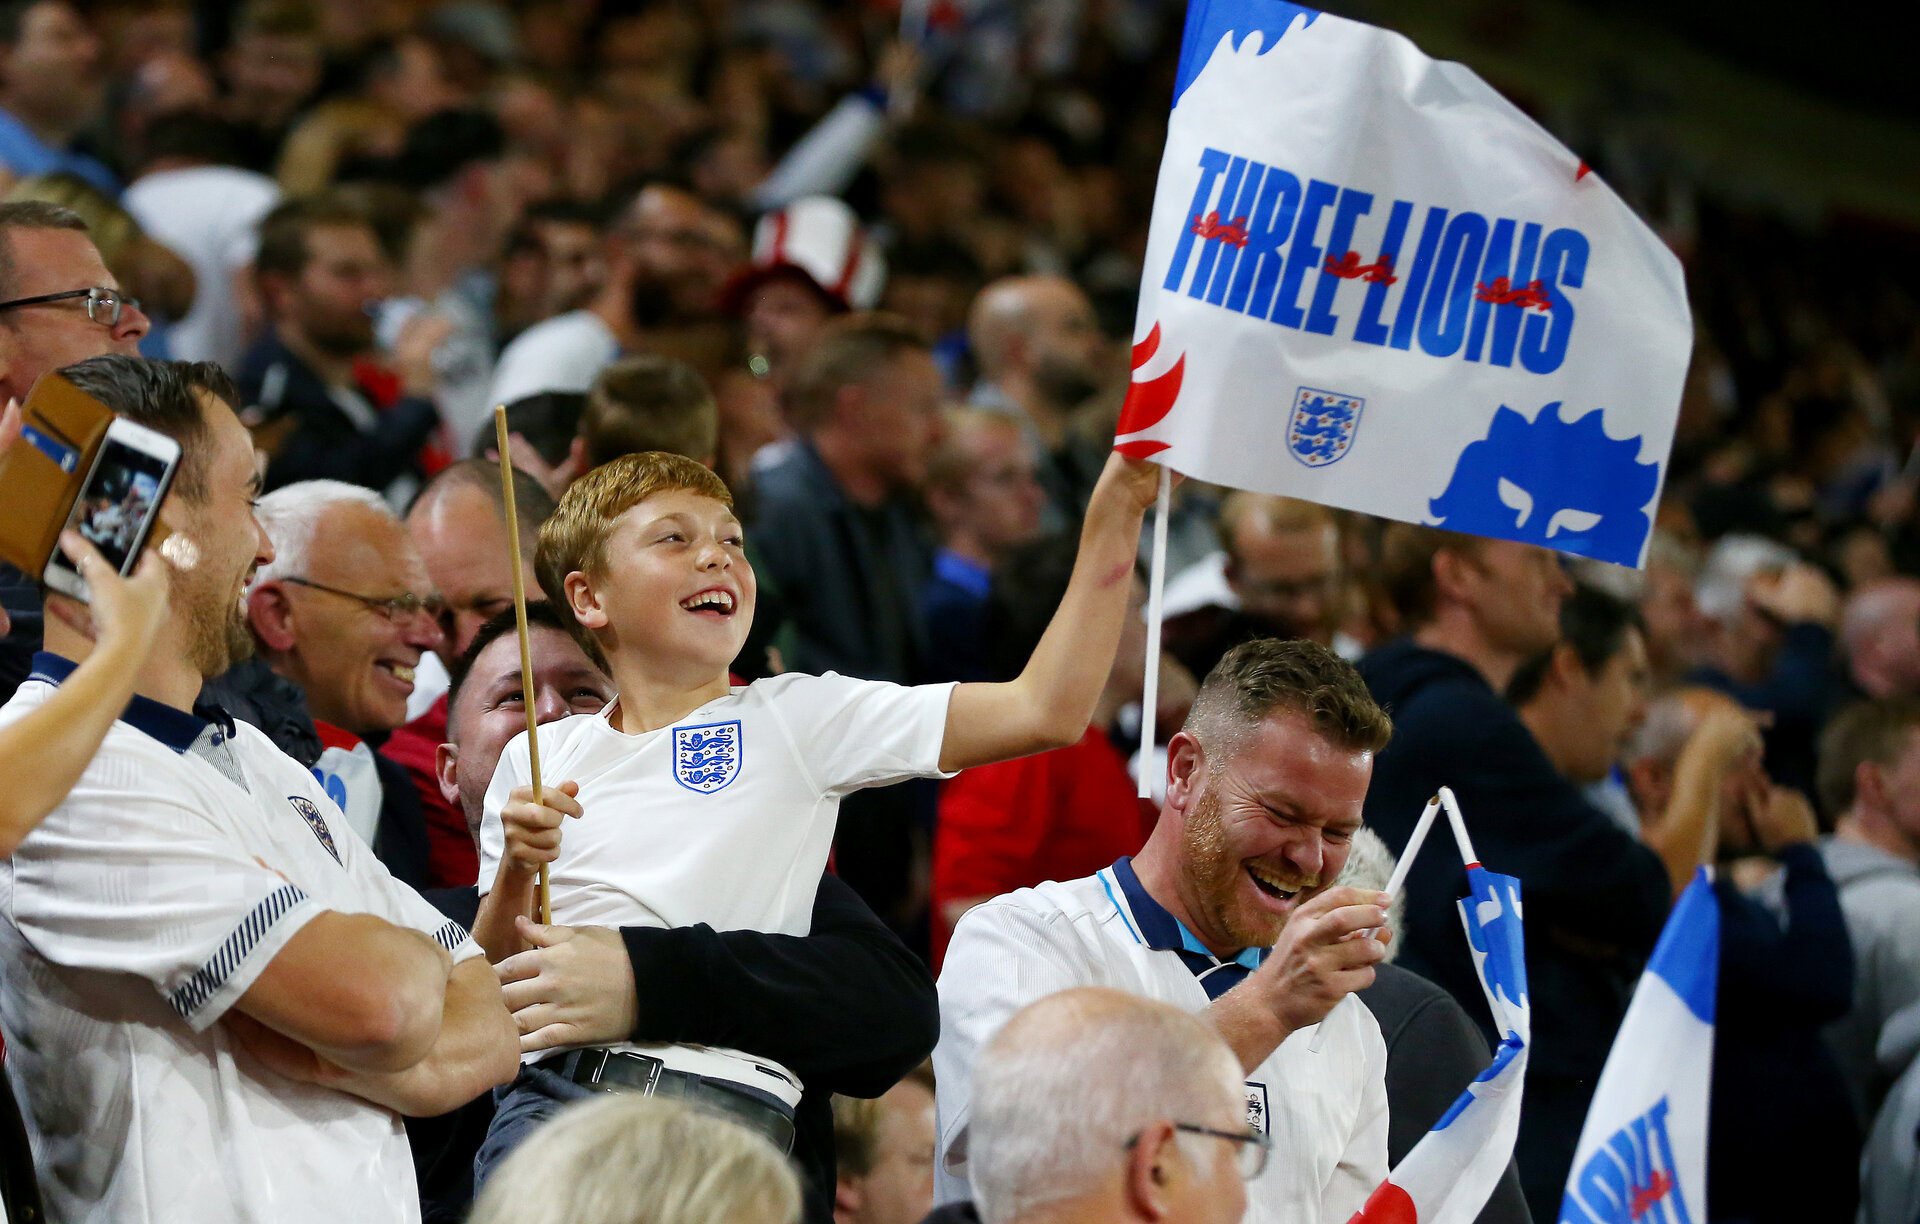 SOUTHAMPTON, ENGLAND - SEPTEMBER 10: A young England fan celebrates during the UEFA Euro 2020 qualifier match between England and Kosovo at St. Mary's Stadium on September 10, 2019 in Southampton, England. (Photo by Matt Watson/Southampton FC via Getty Images)